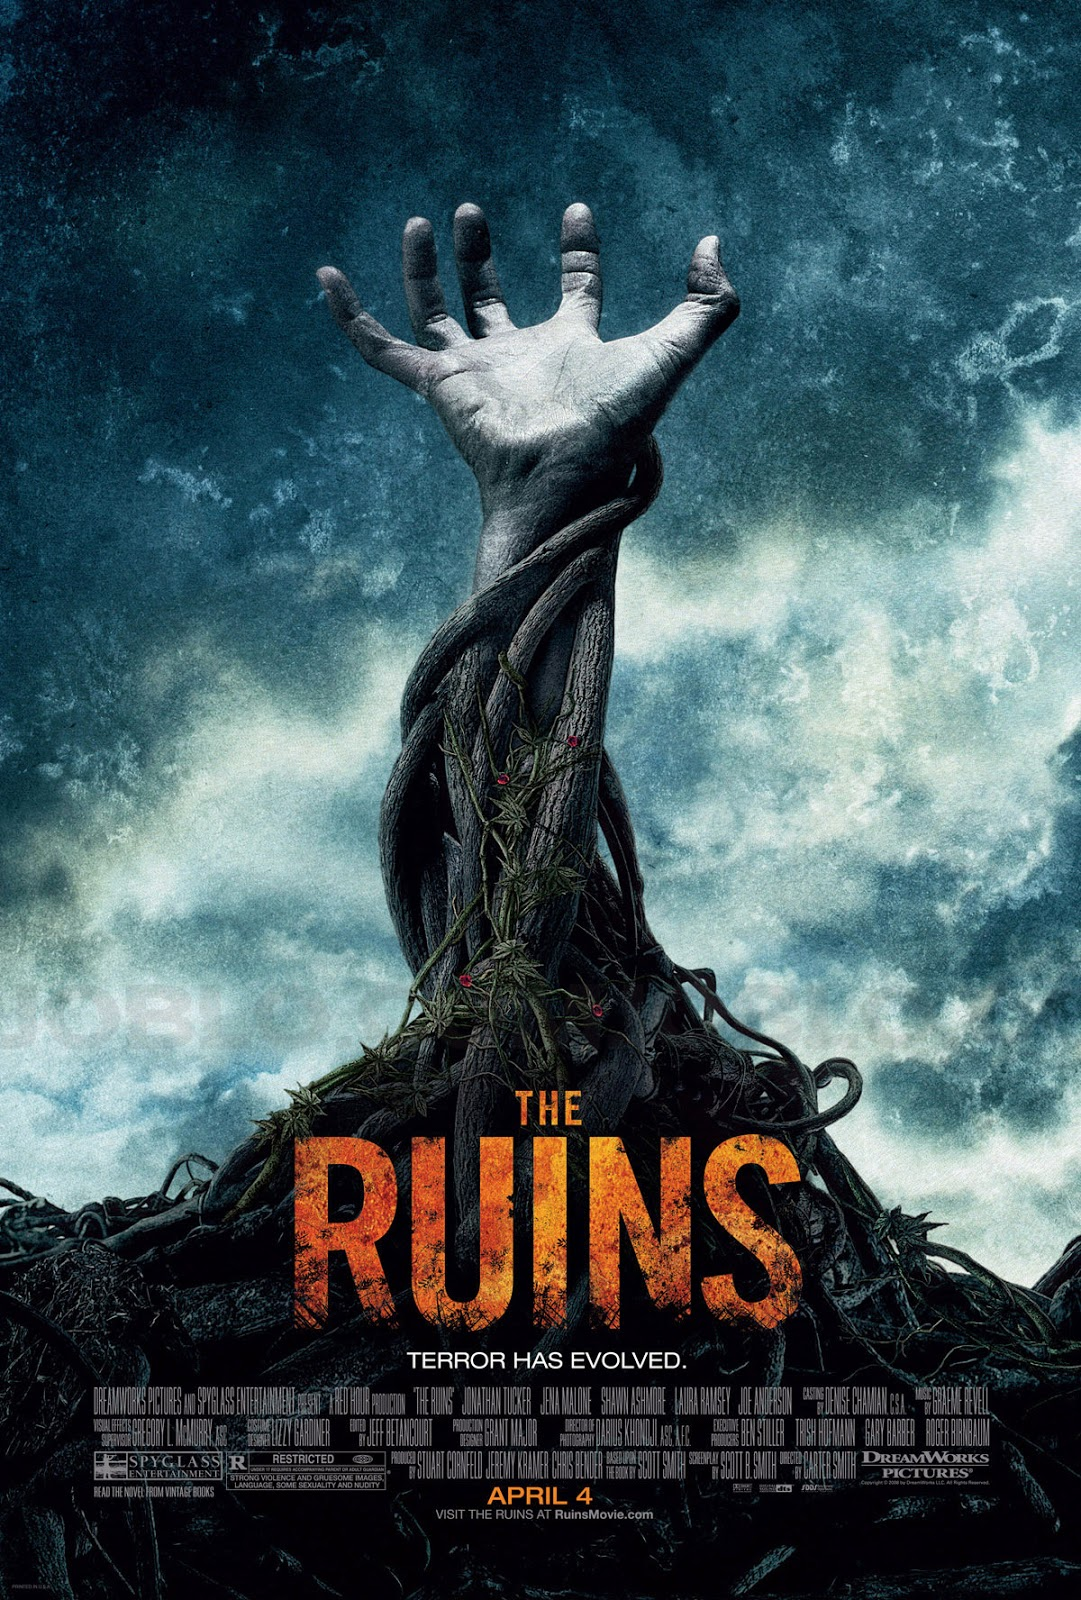 The Ruins (2008) 420p 350MB Dubbed Audio | Full Movie Download, download The Ruins (2008) 420p 350MB Dubbed Audio | Full Movie Download